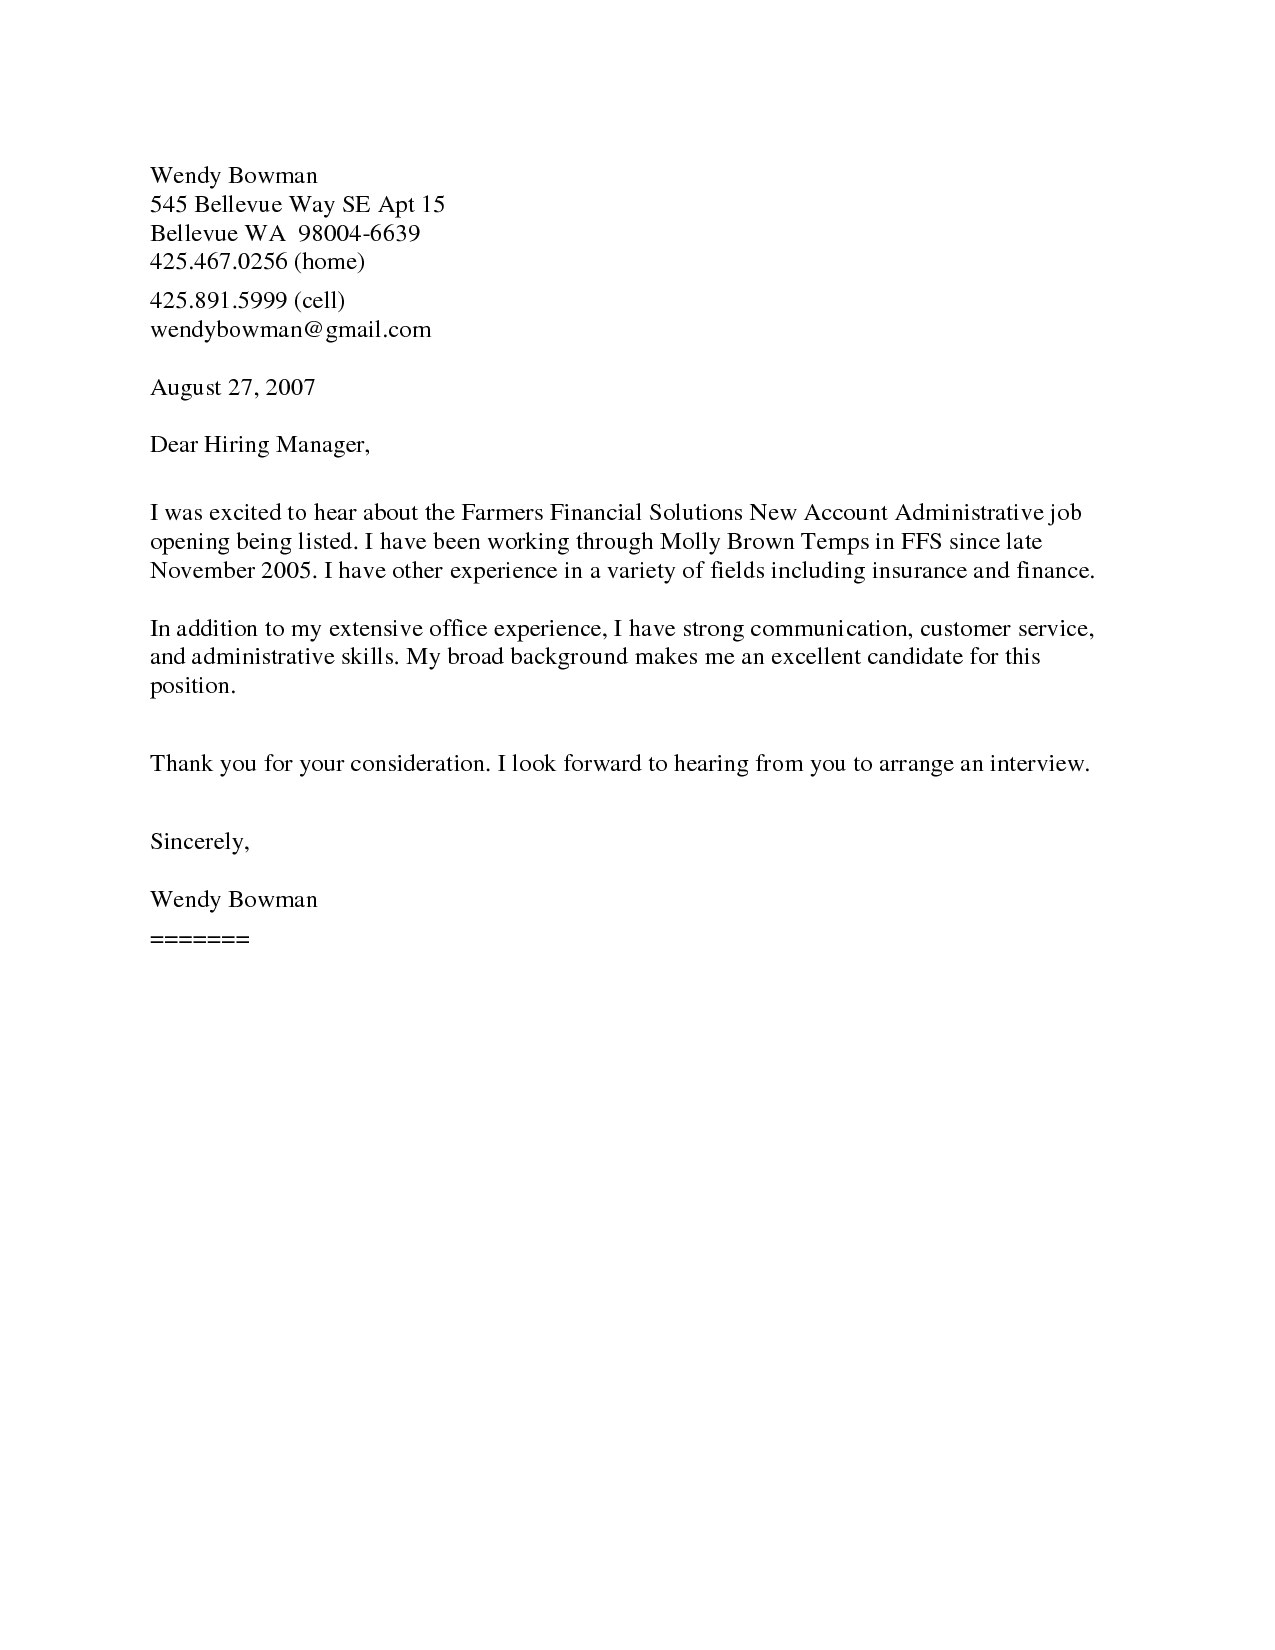 examples of general cover letters for jobs general cover letters sample general cover letter for job